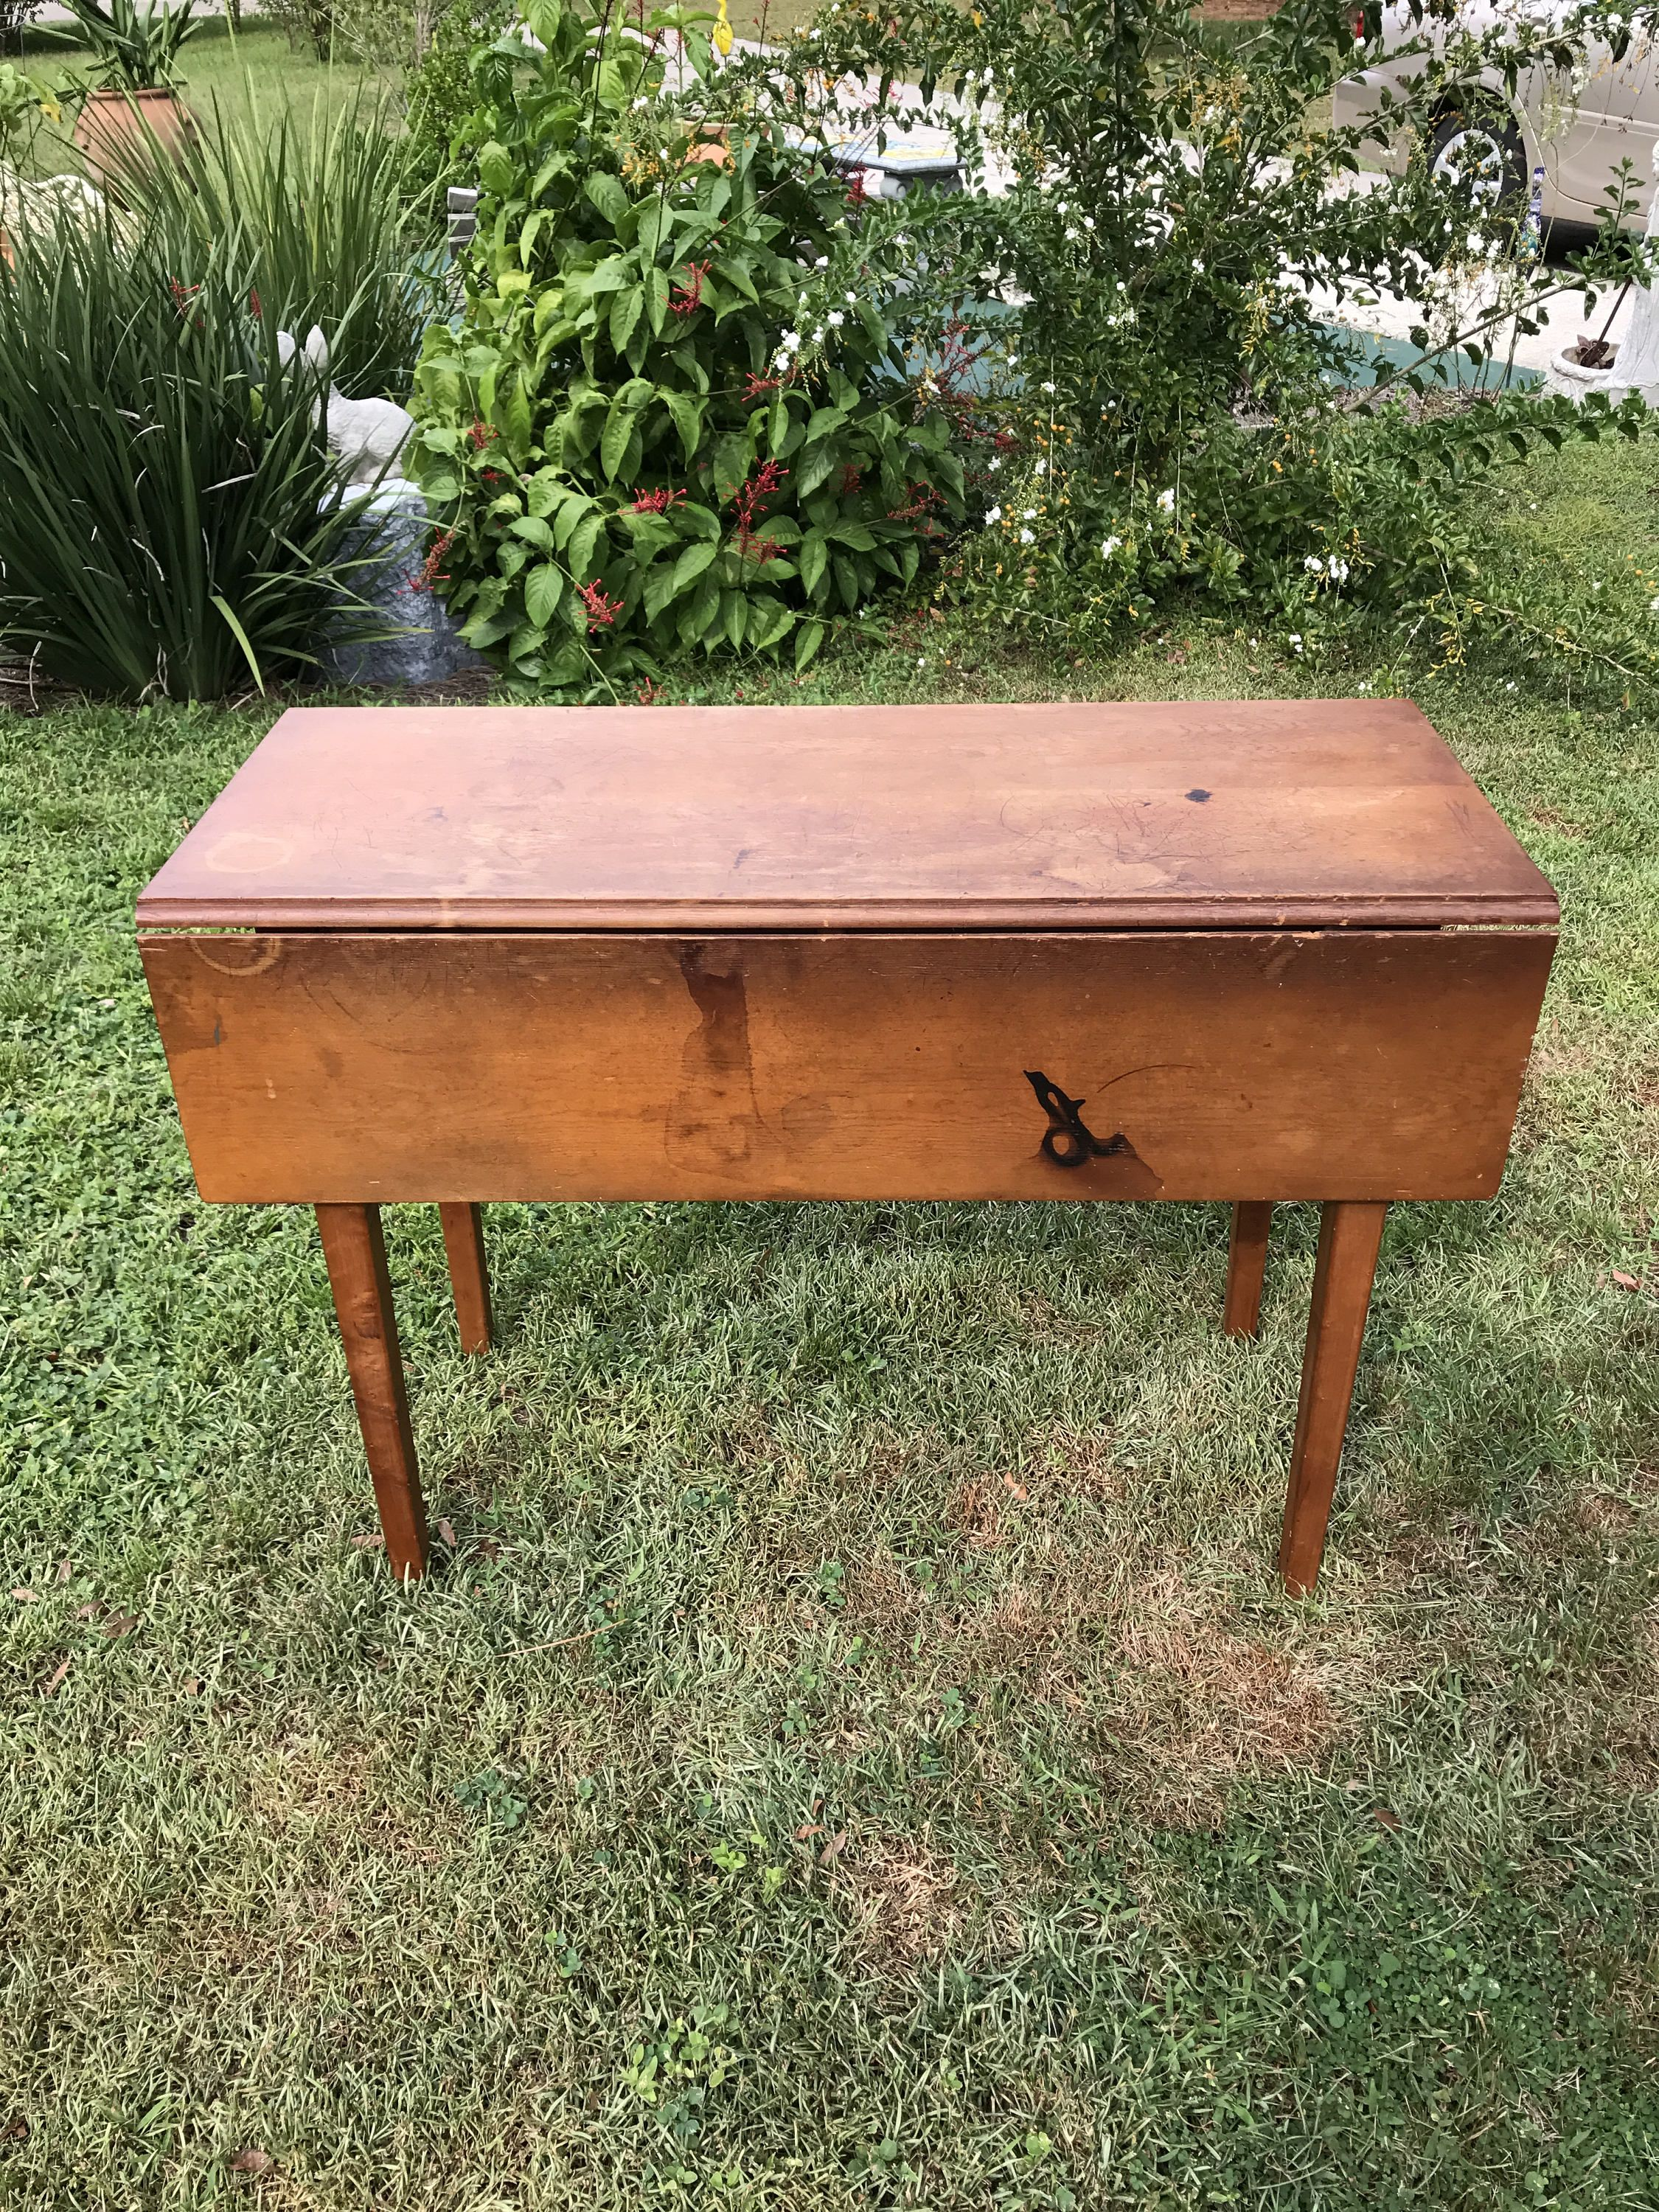 Antique Pine Drop Leaf Table Kitchen Table Circa 1800s Primitive Pine Table By Booboozbazaar On Etsy Drop Leaf Table Leaf Table Pine Table